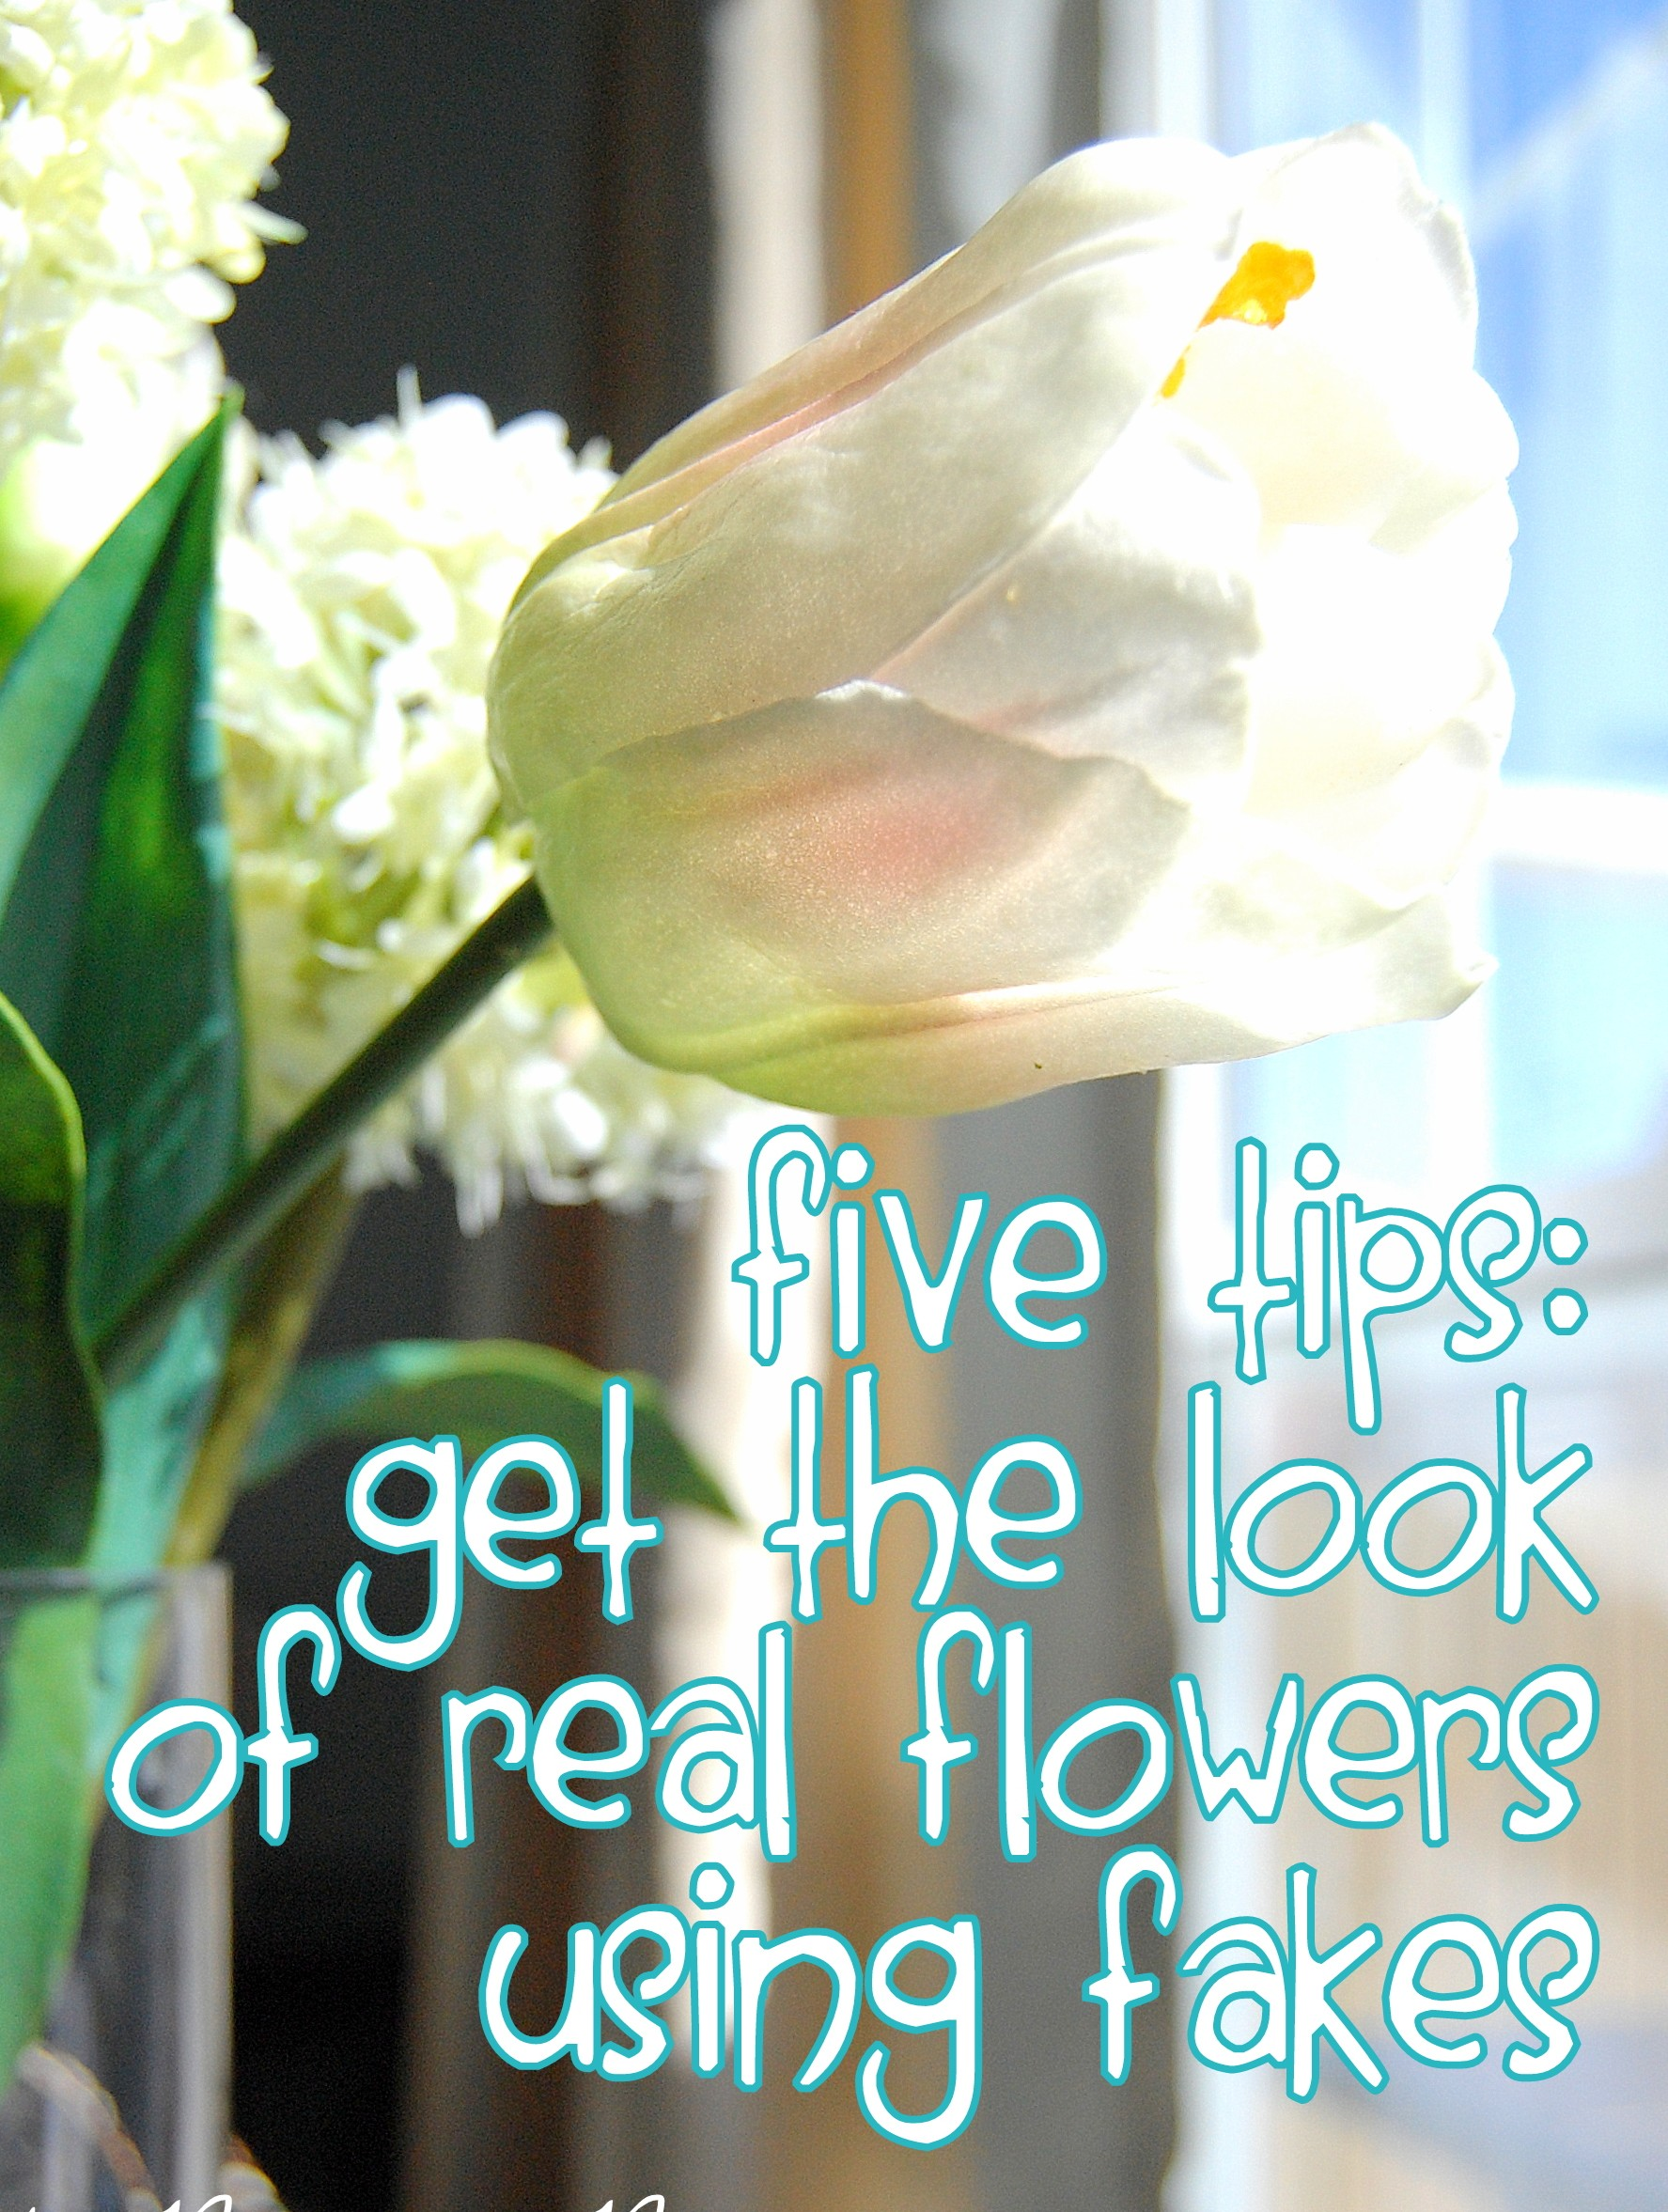 Get the look of real flowers using fakes: my five tips ...